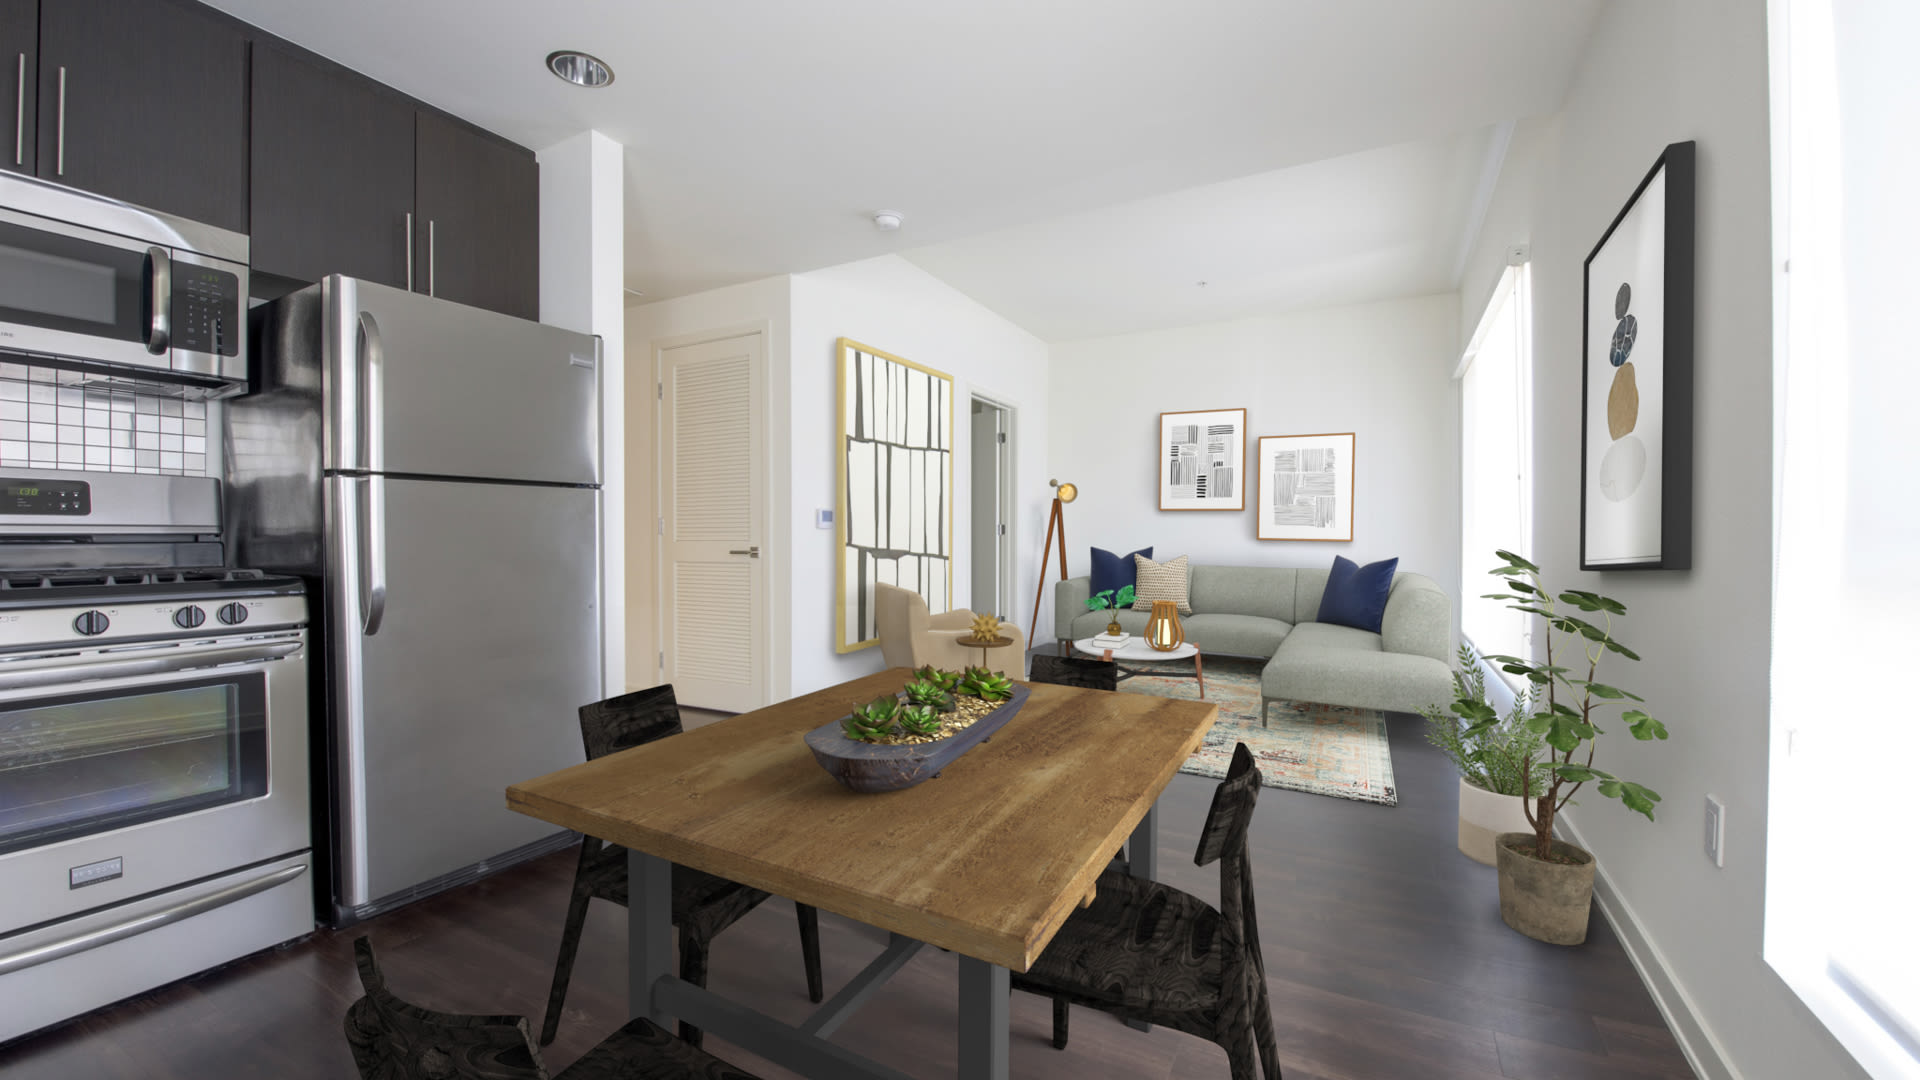 C on Pico Apartments - Kitchen and Living Room